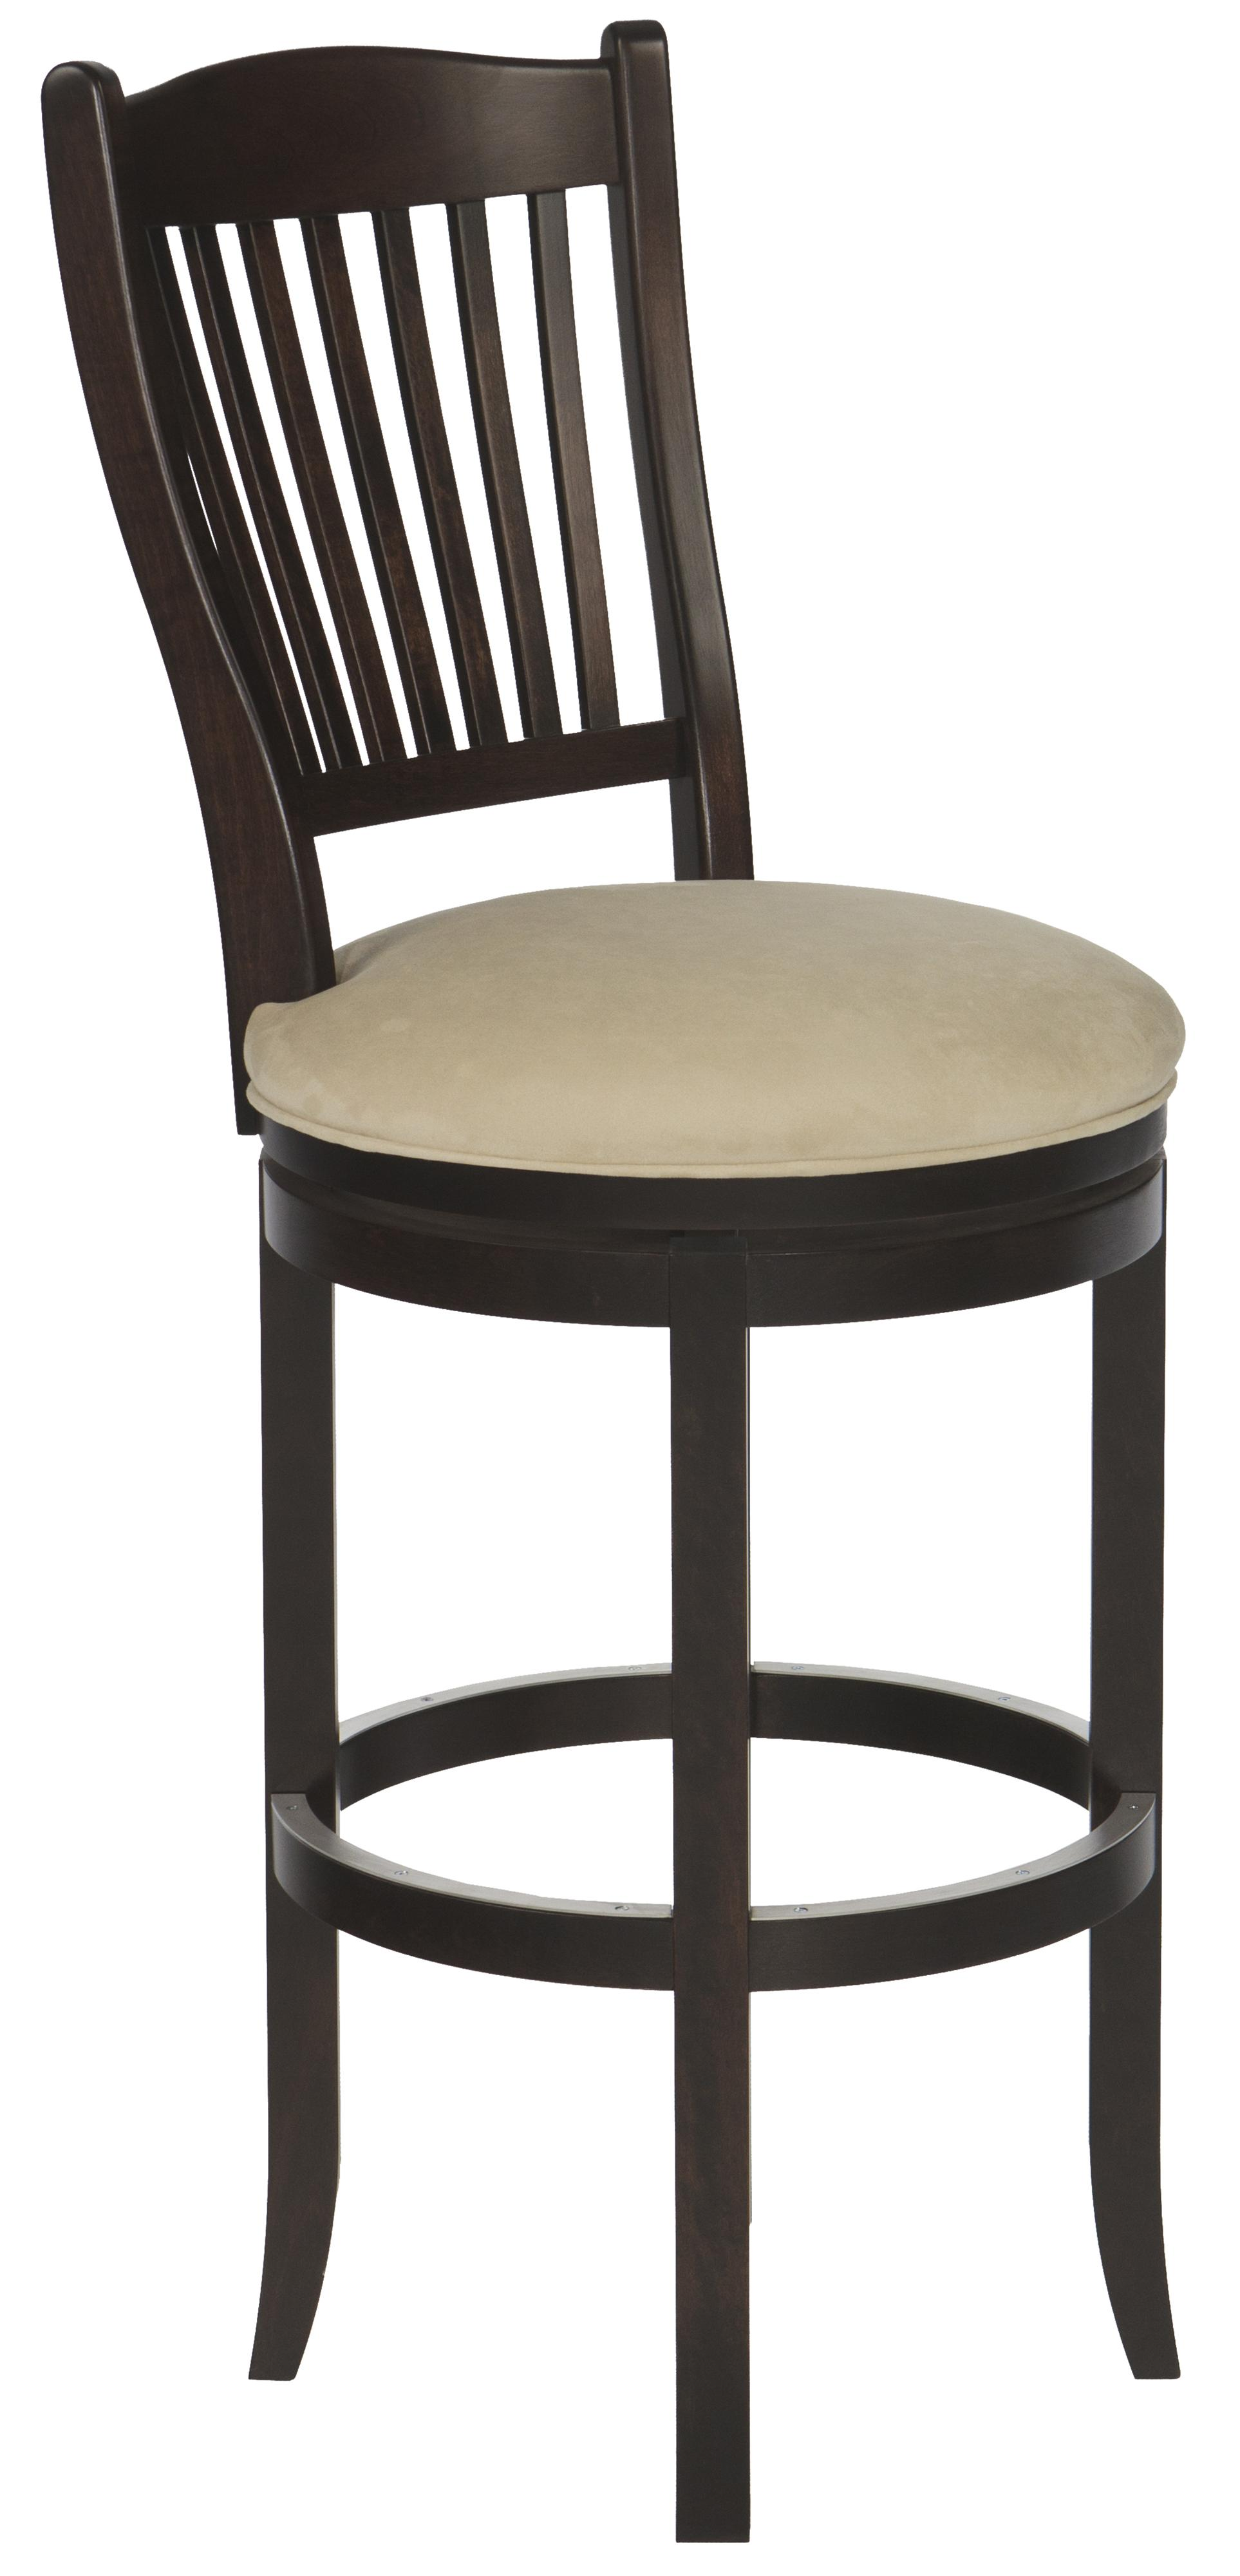 "Customizable 32"" Upholstered Swivel Stool"